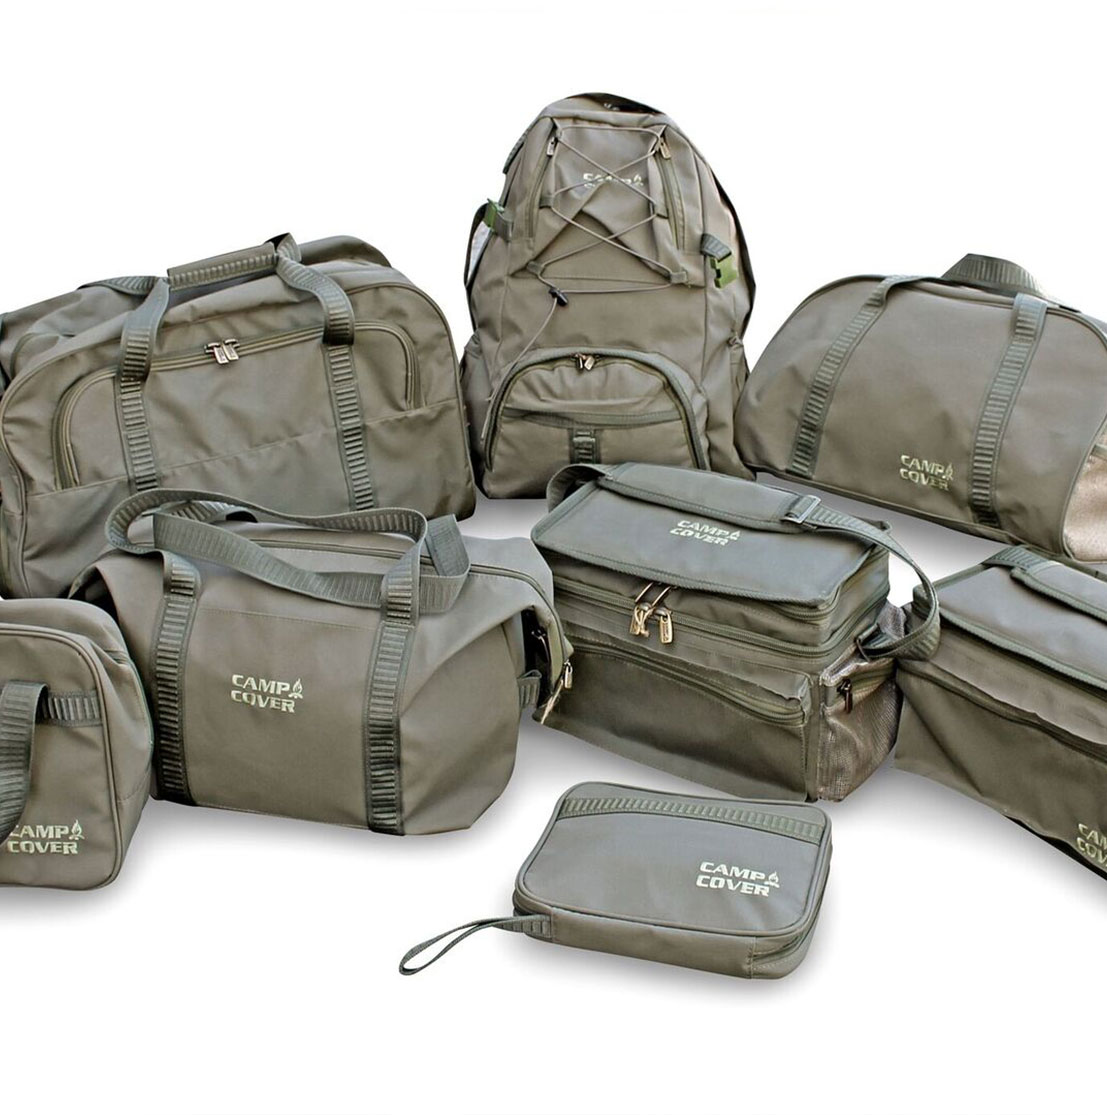 Ripcote-fabric-luggage-range